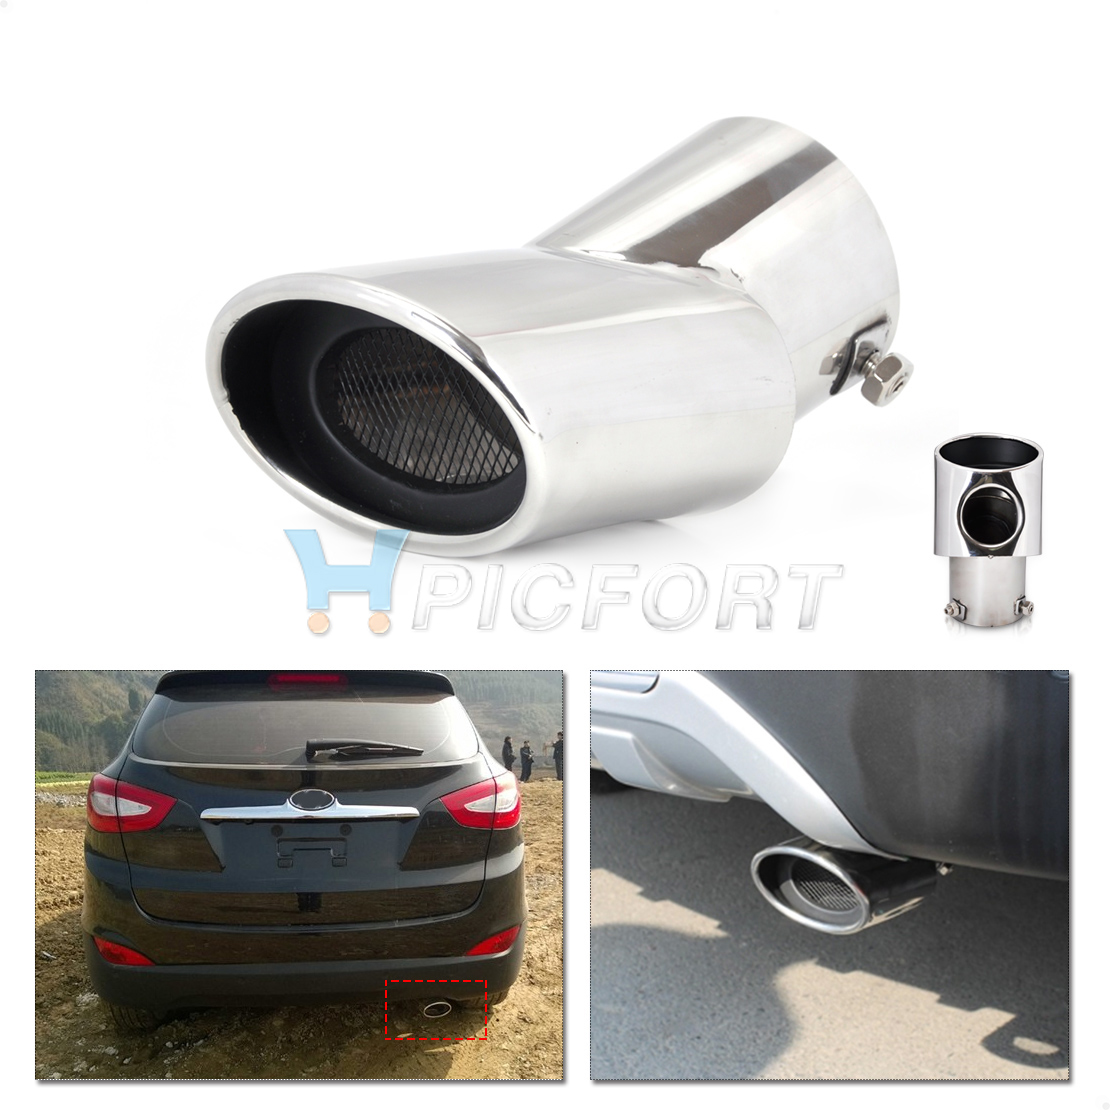 Exhaust Pipes & Tips For Chevrolet Cruze 2010-2014 Stainless Exhaust Mufflers Pipe Tip End Tailpipe